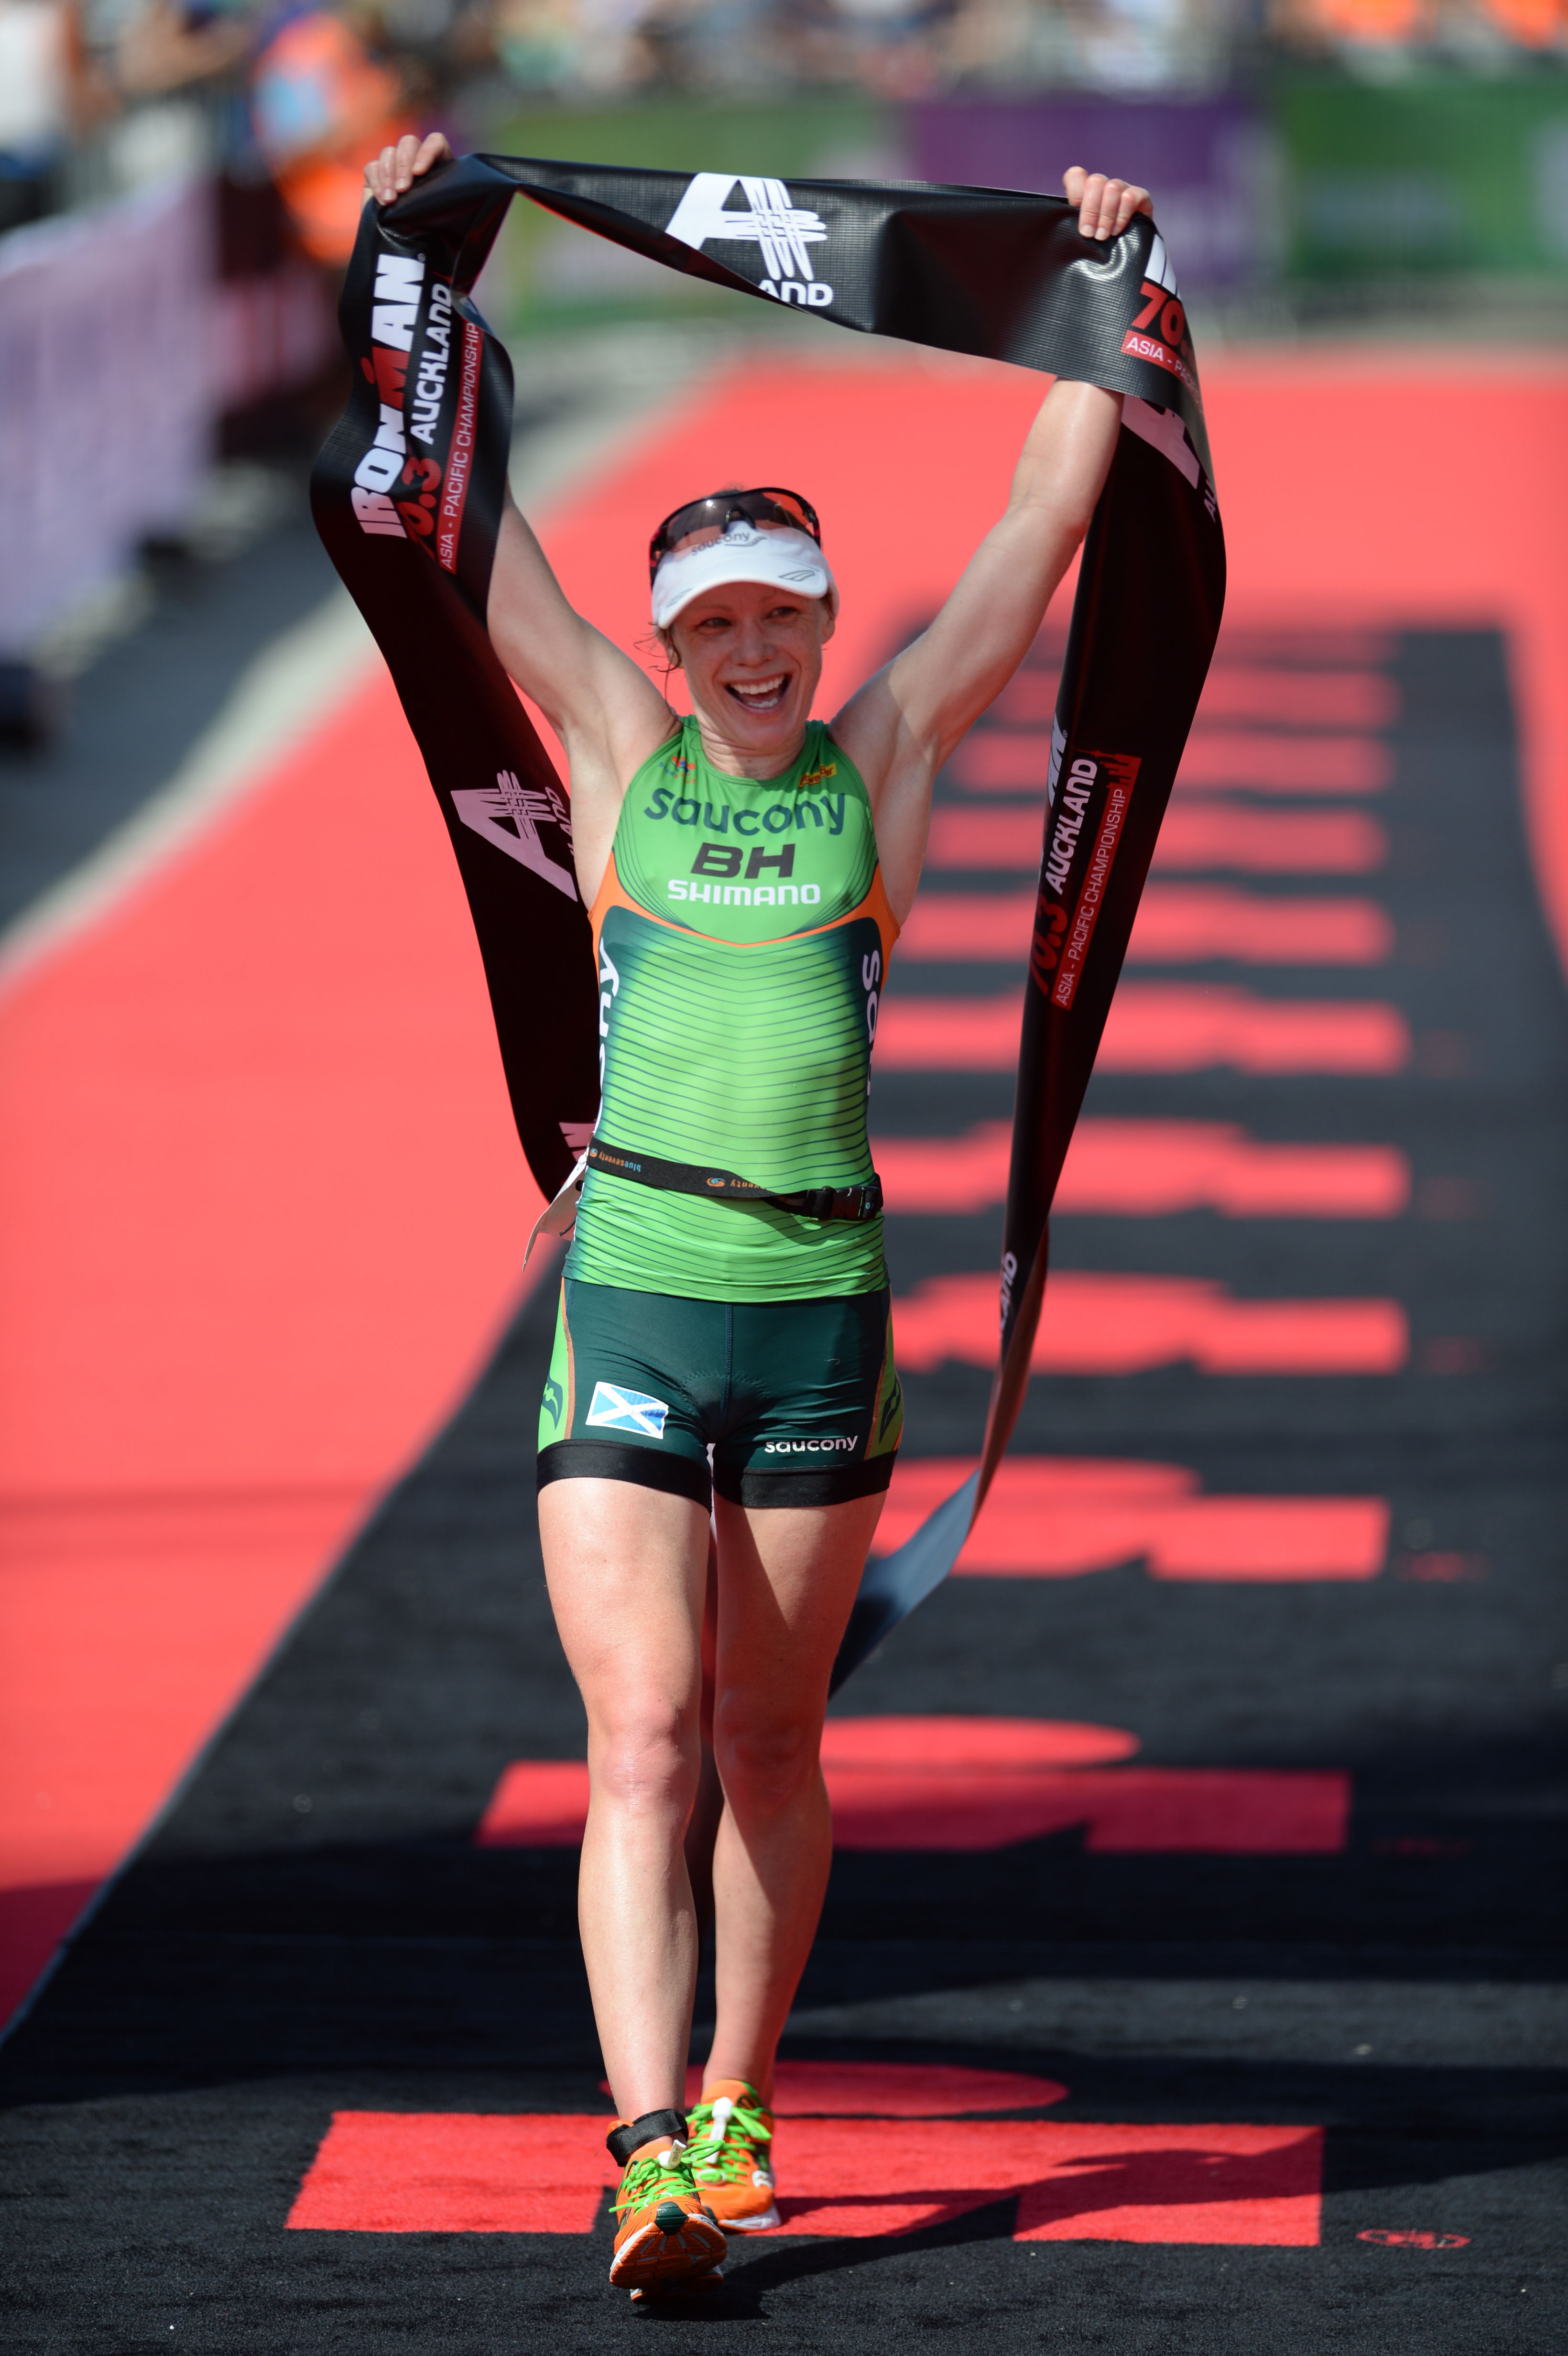 Catriona Morrison 1st , 2014 Ironman 70.3 Auckland, Auckland New Zealand, January 19 2014. ©Delly Carr / Sportshoot. Pic credit mandatory for free usage. Thank you.